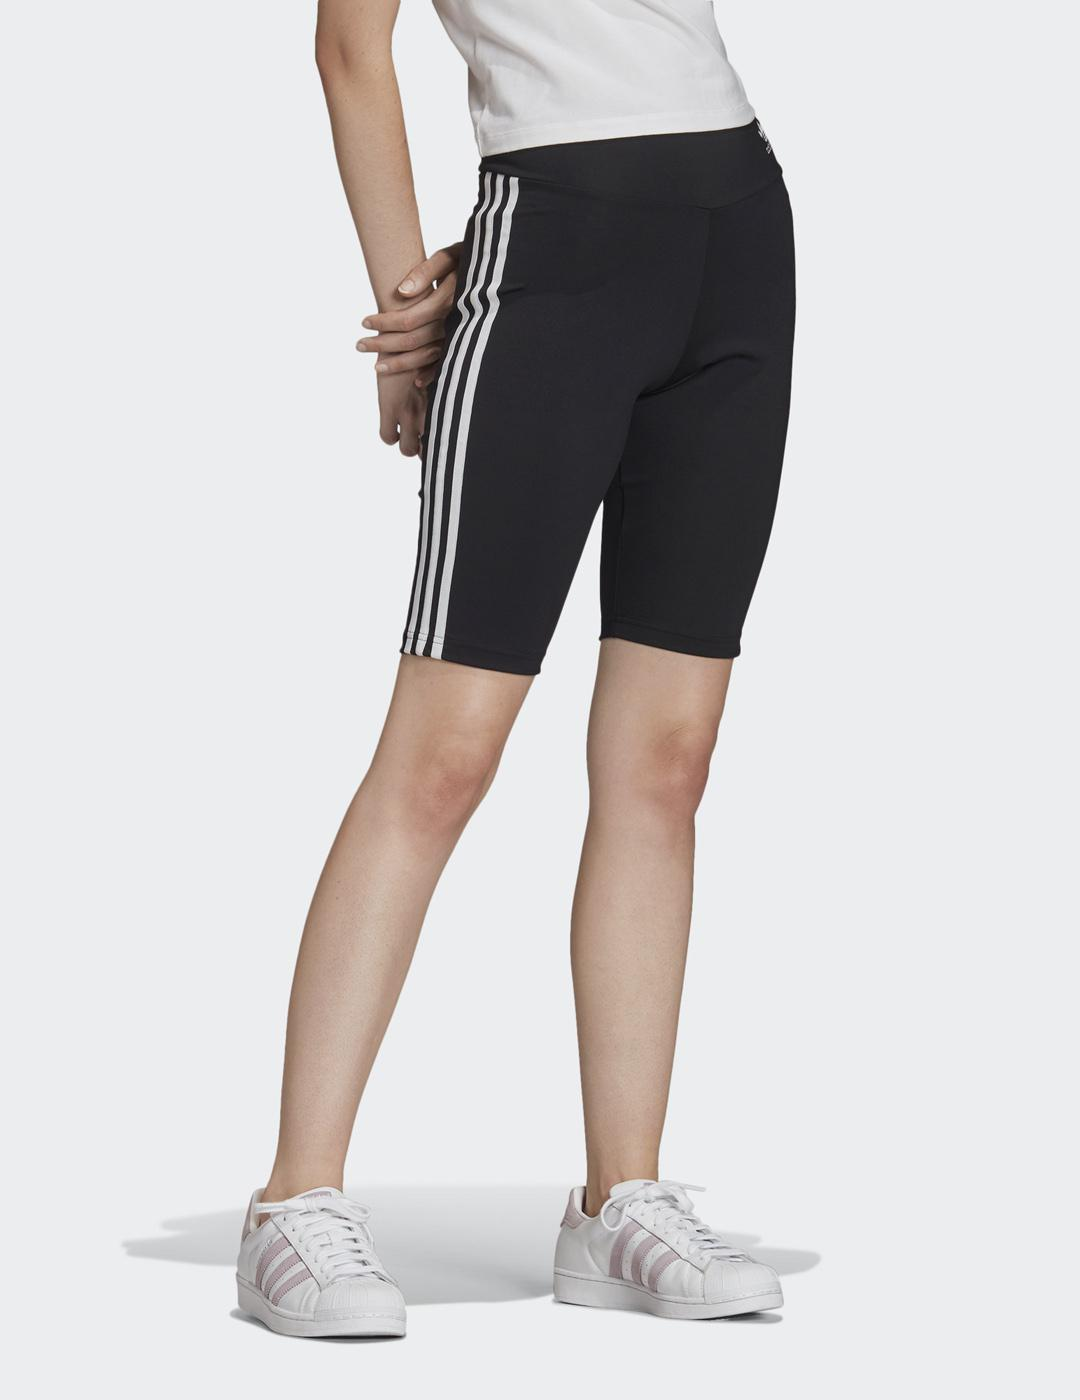 Leggins SHORT Adidas TIGHTS - Negro